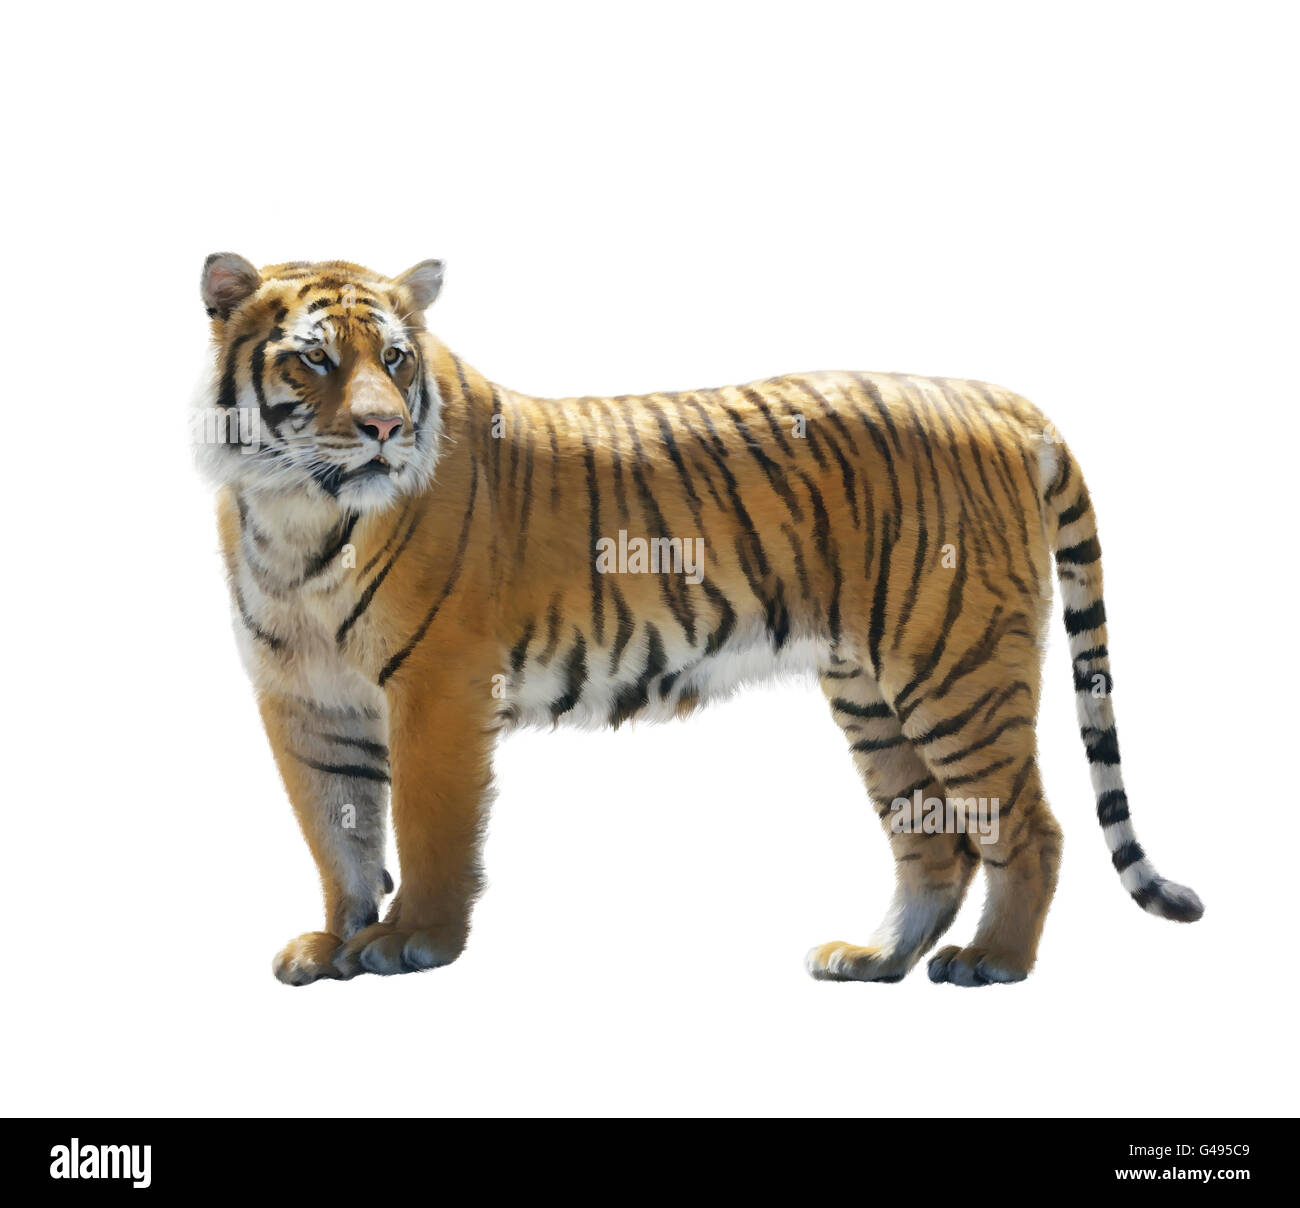 Digital Painting of Tiger isolated on White - Stock Image